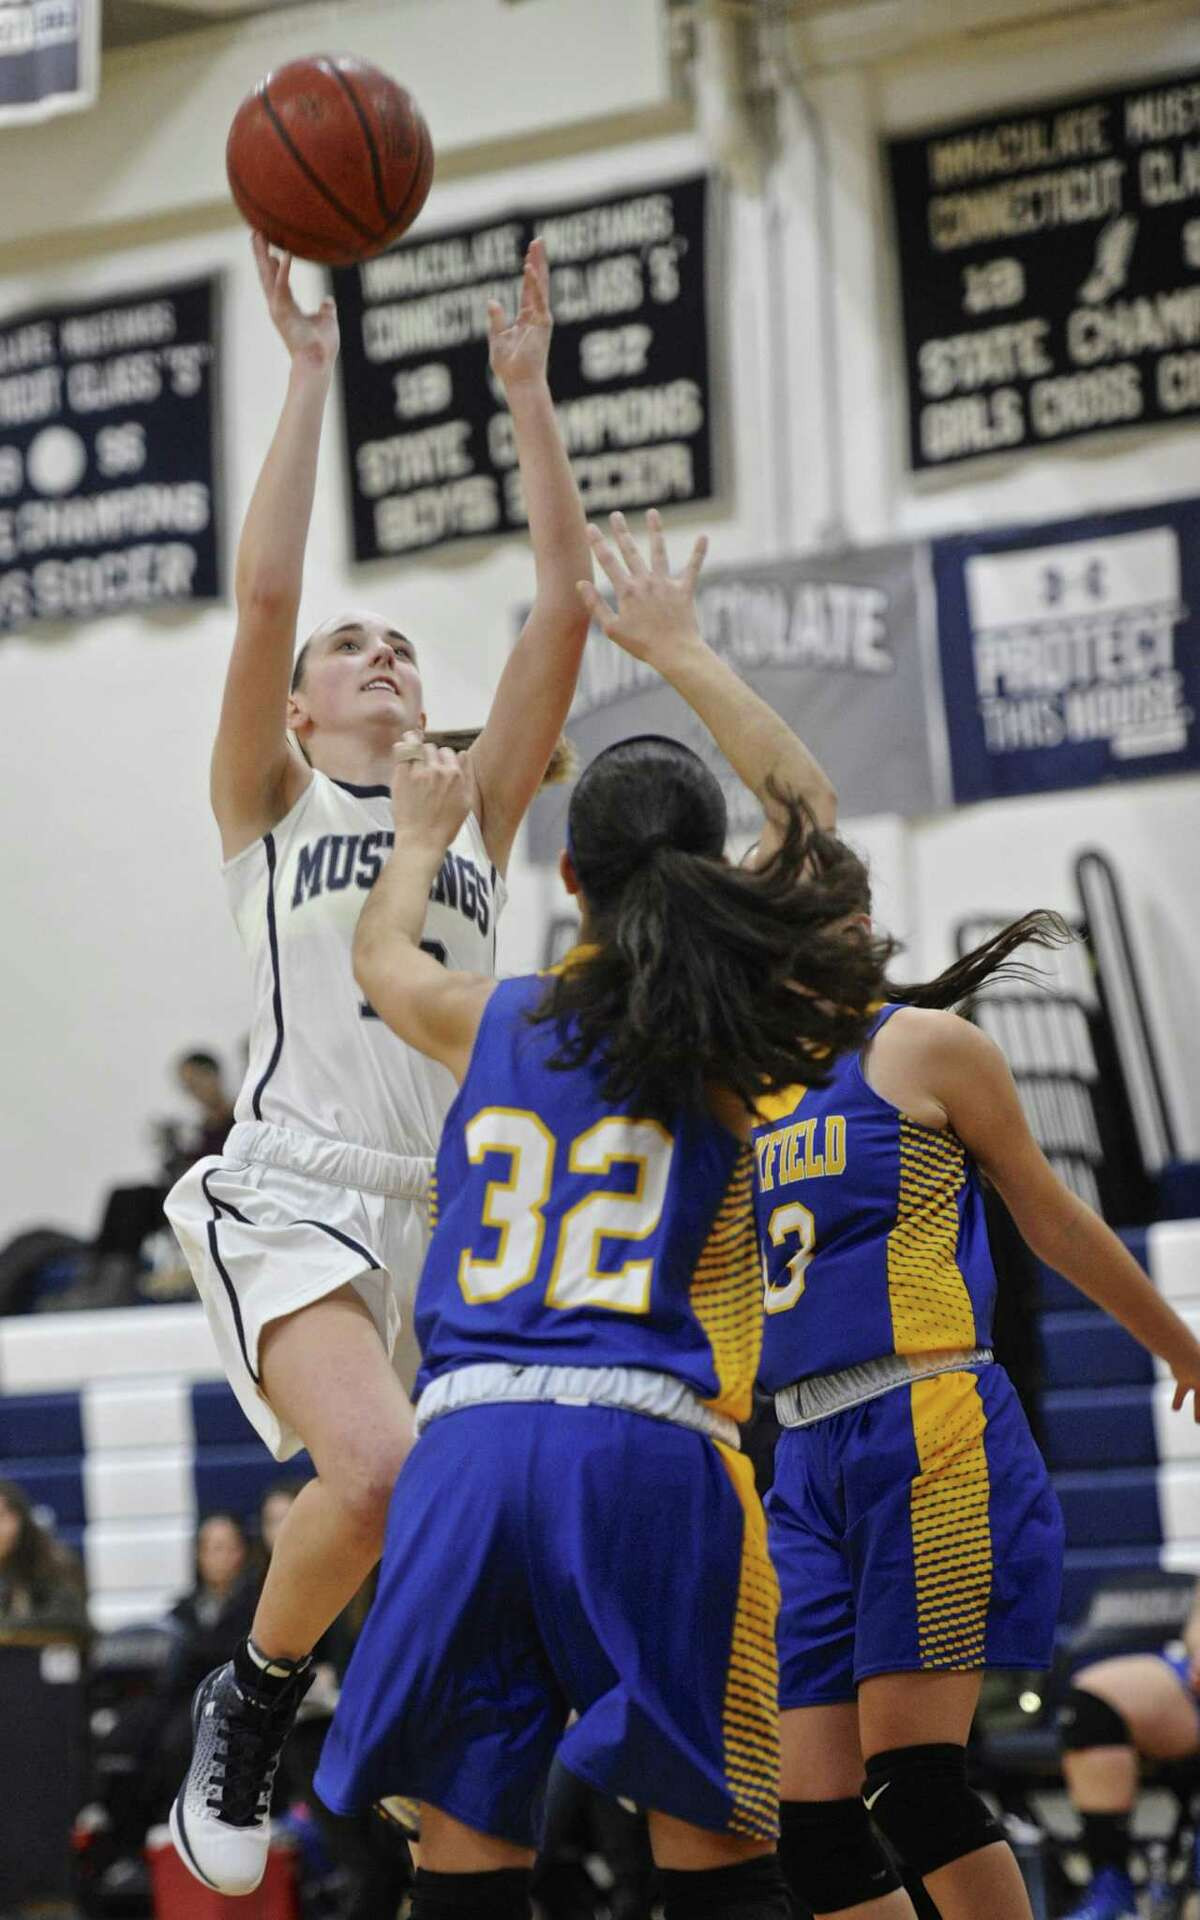 Immaculate's Meghan Schlichtig (10) goes to the basket over Brookfield's Jenna Joshi (32) in the girls high school basketball game between Brookfield and Immaculate high schools, on Thursday night, December 22, 2016, at Immaculate High School, Danbury, Conn.